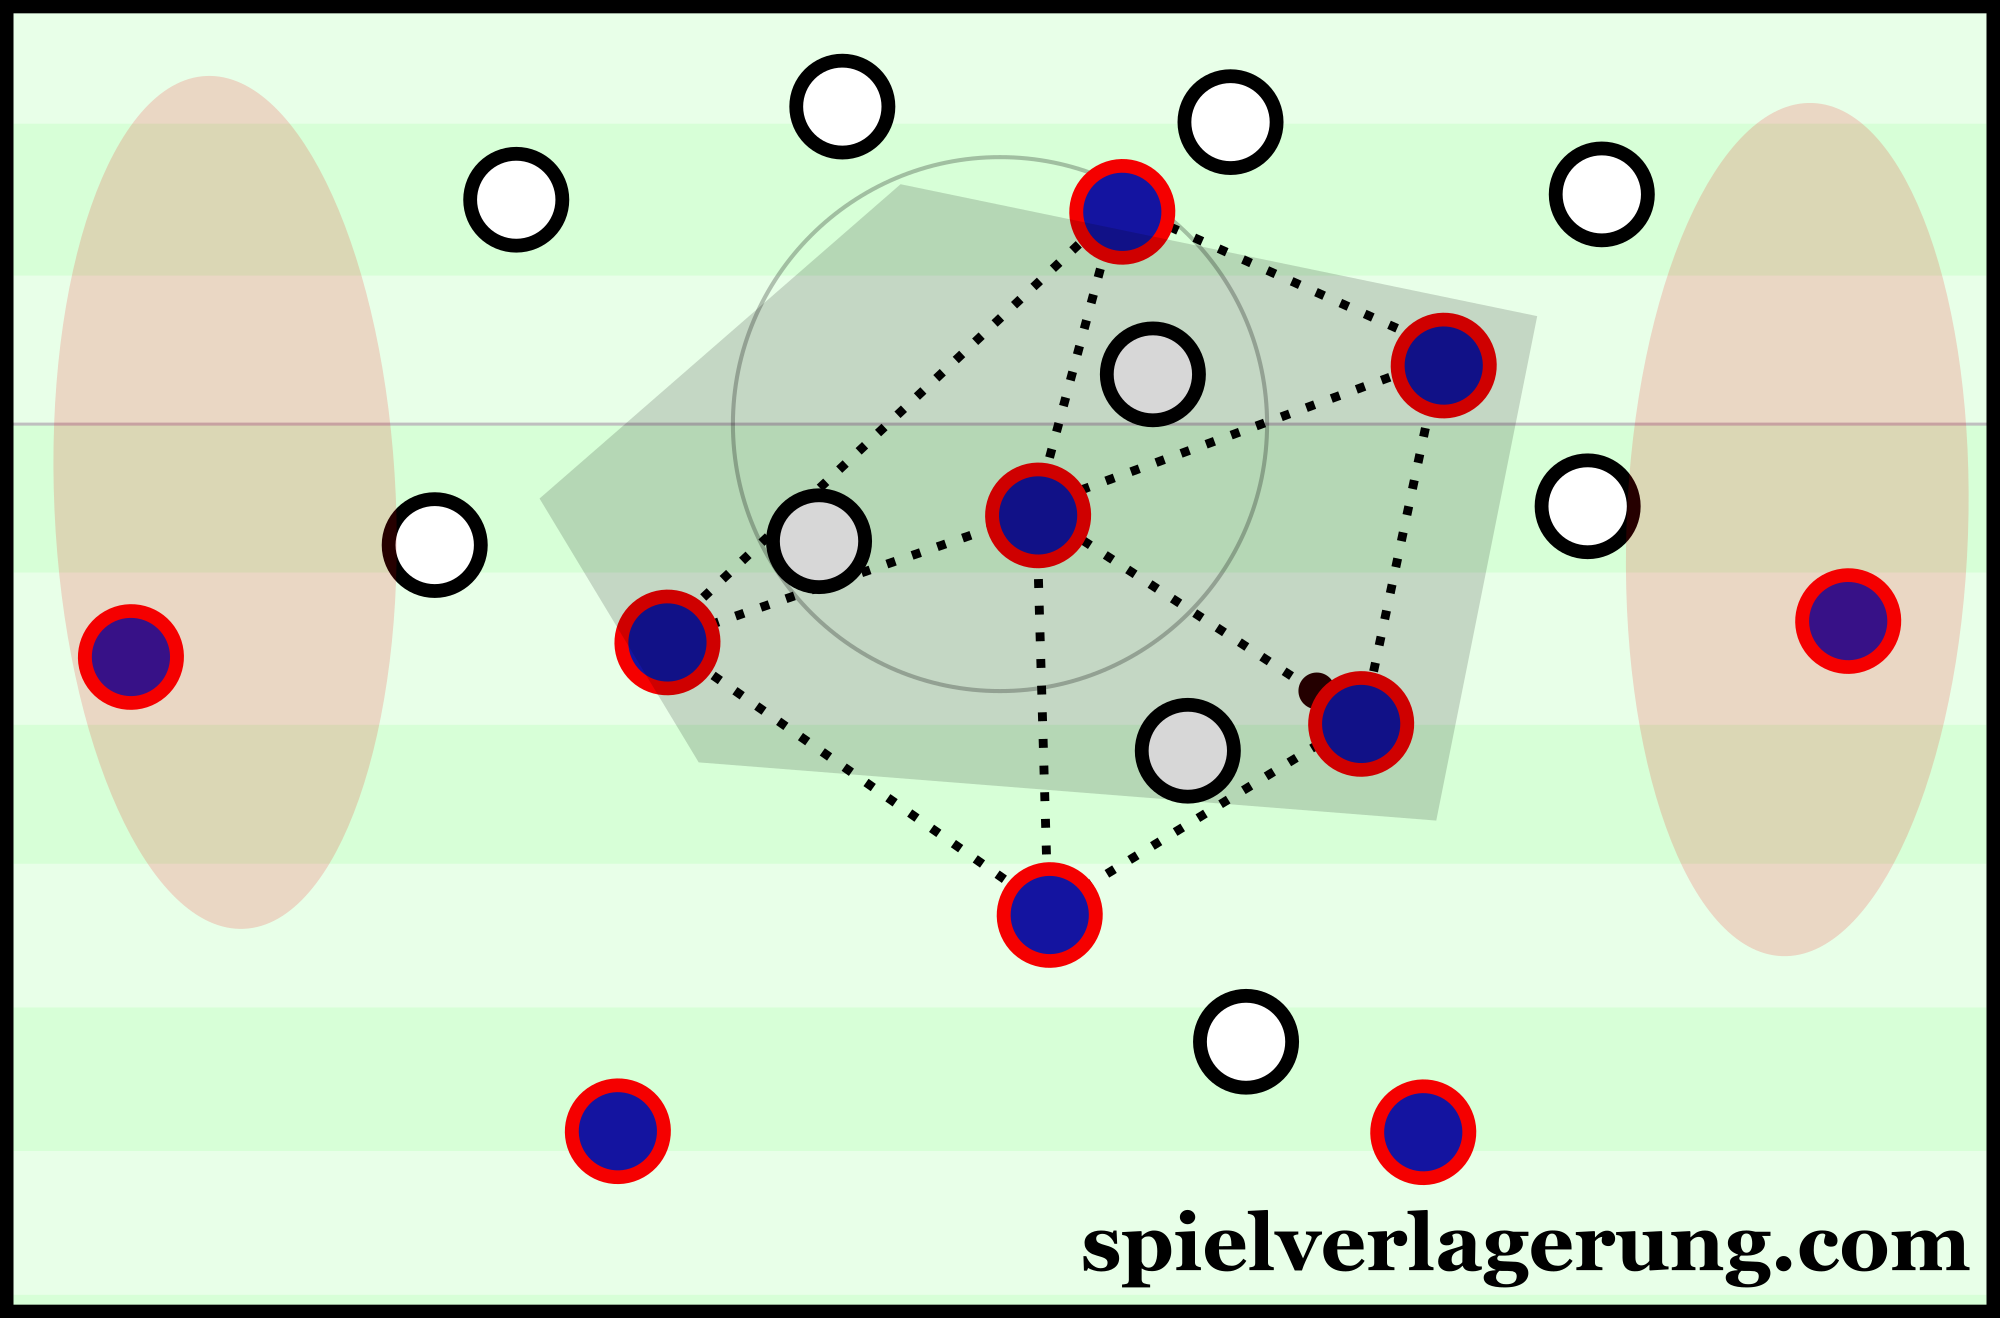 PSG's central-focus leads to high levels of connections through the middle.